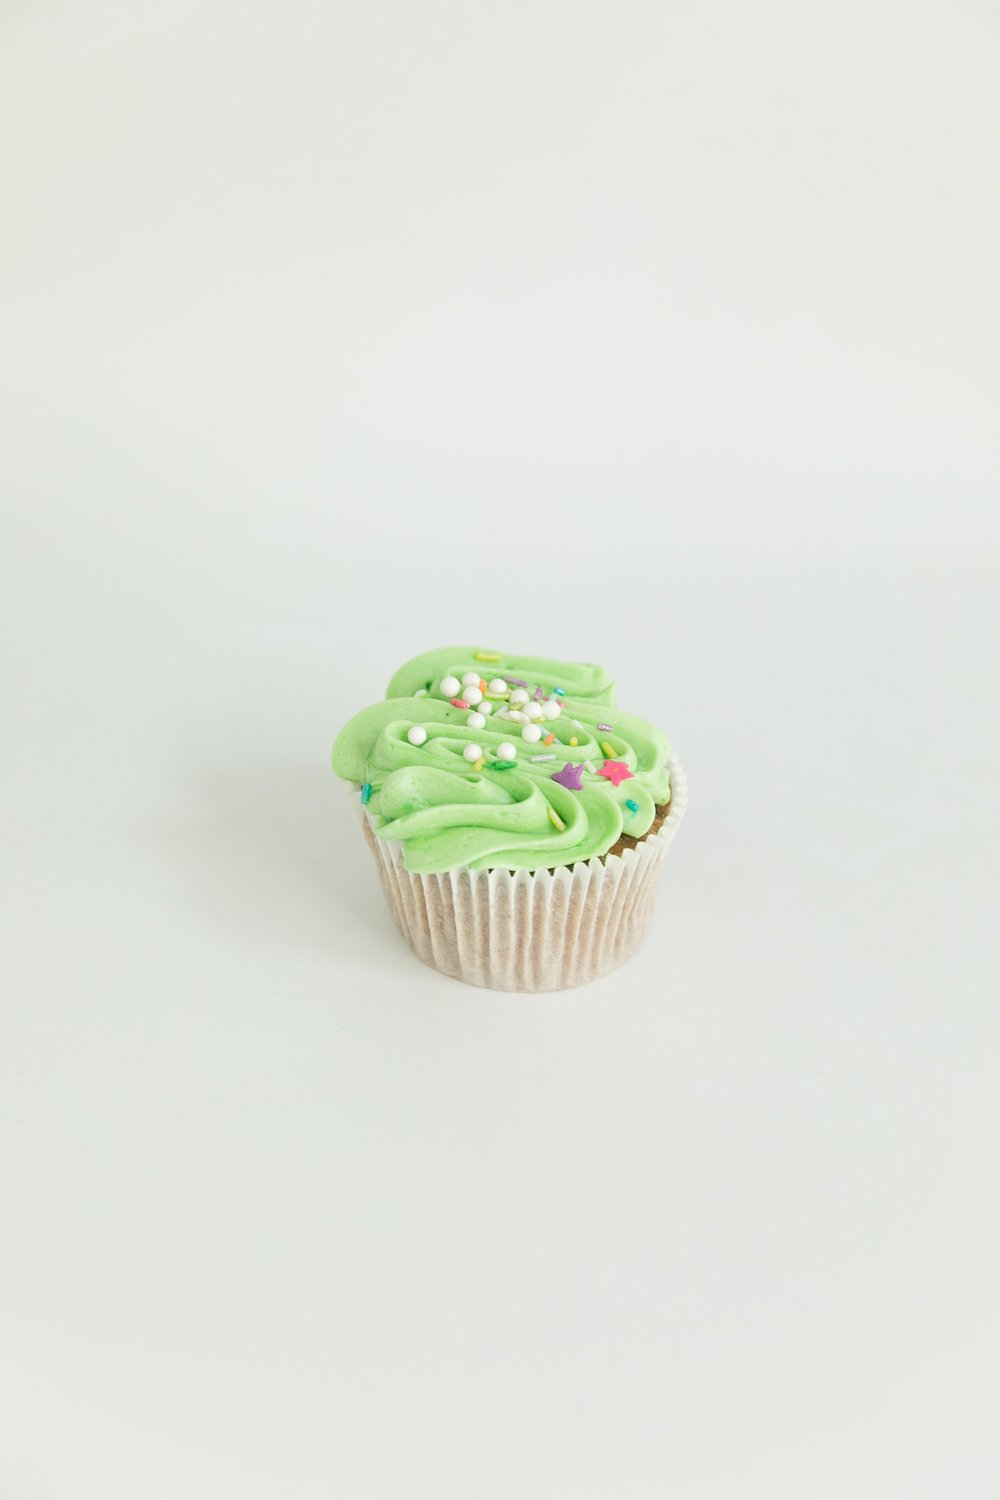 vanilla cupcake with colorful frosting and sprinkles